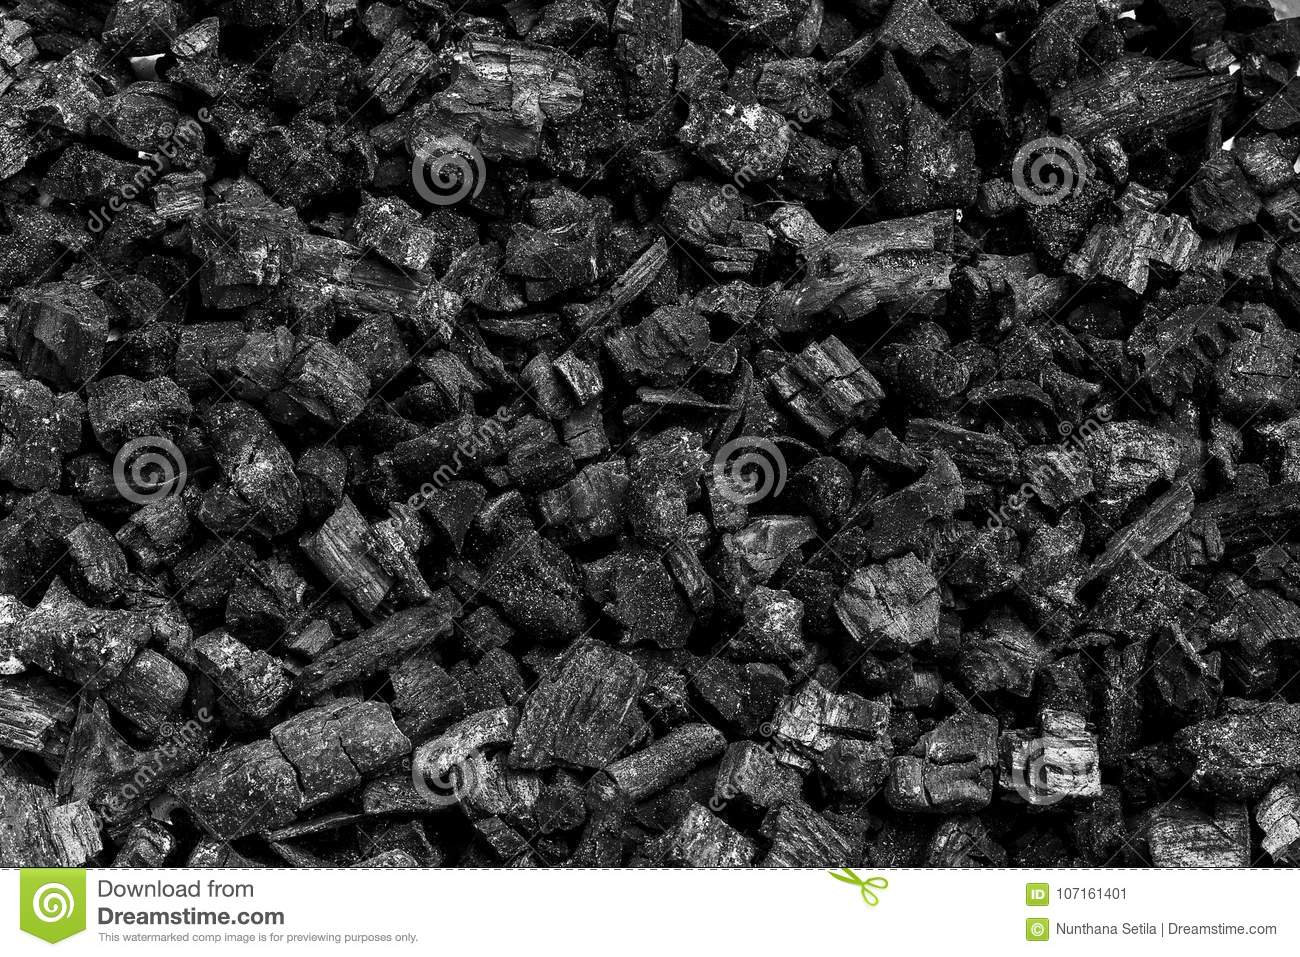 Natural wood charcoal, traditional charcoal or hard wood charcoal, Used as fuel for industrial coal